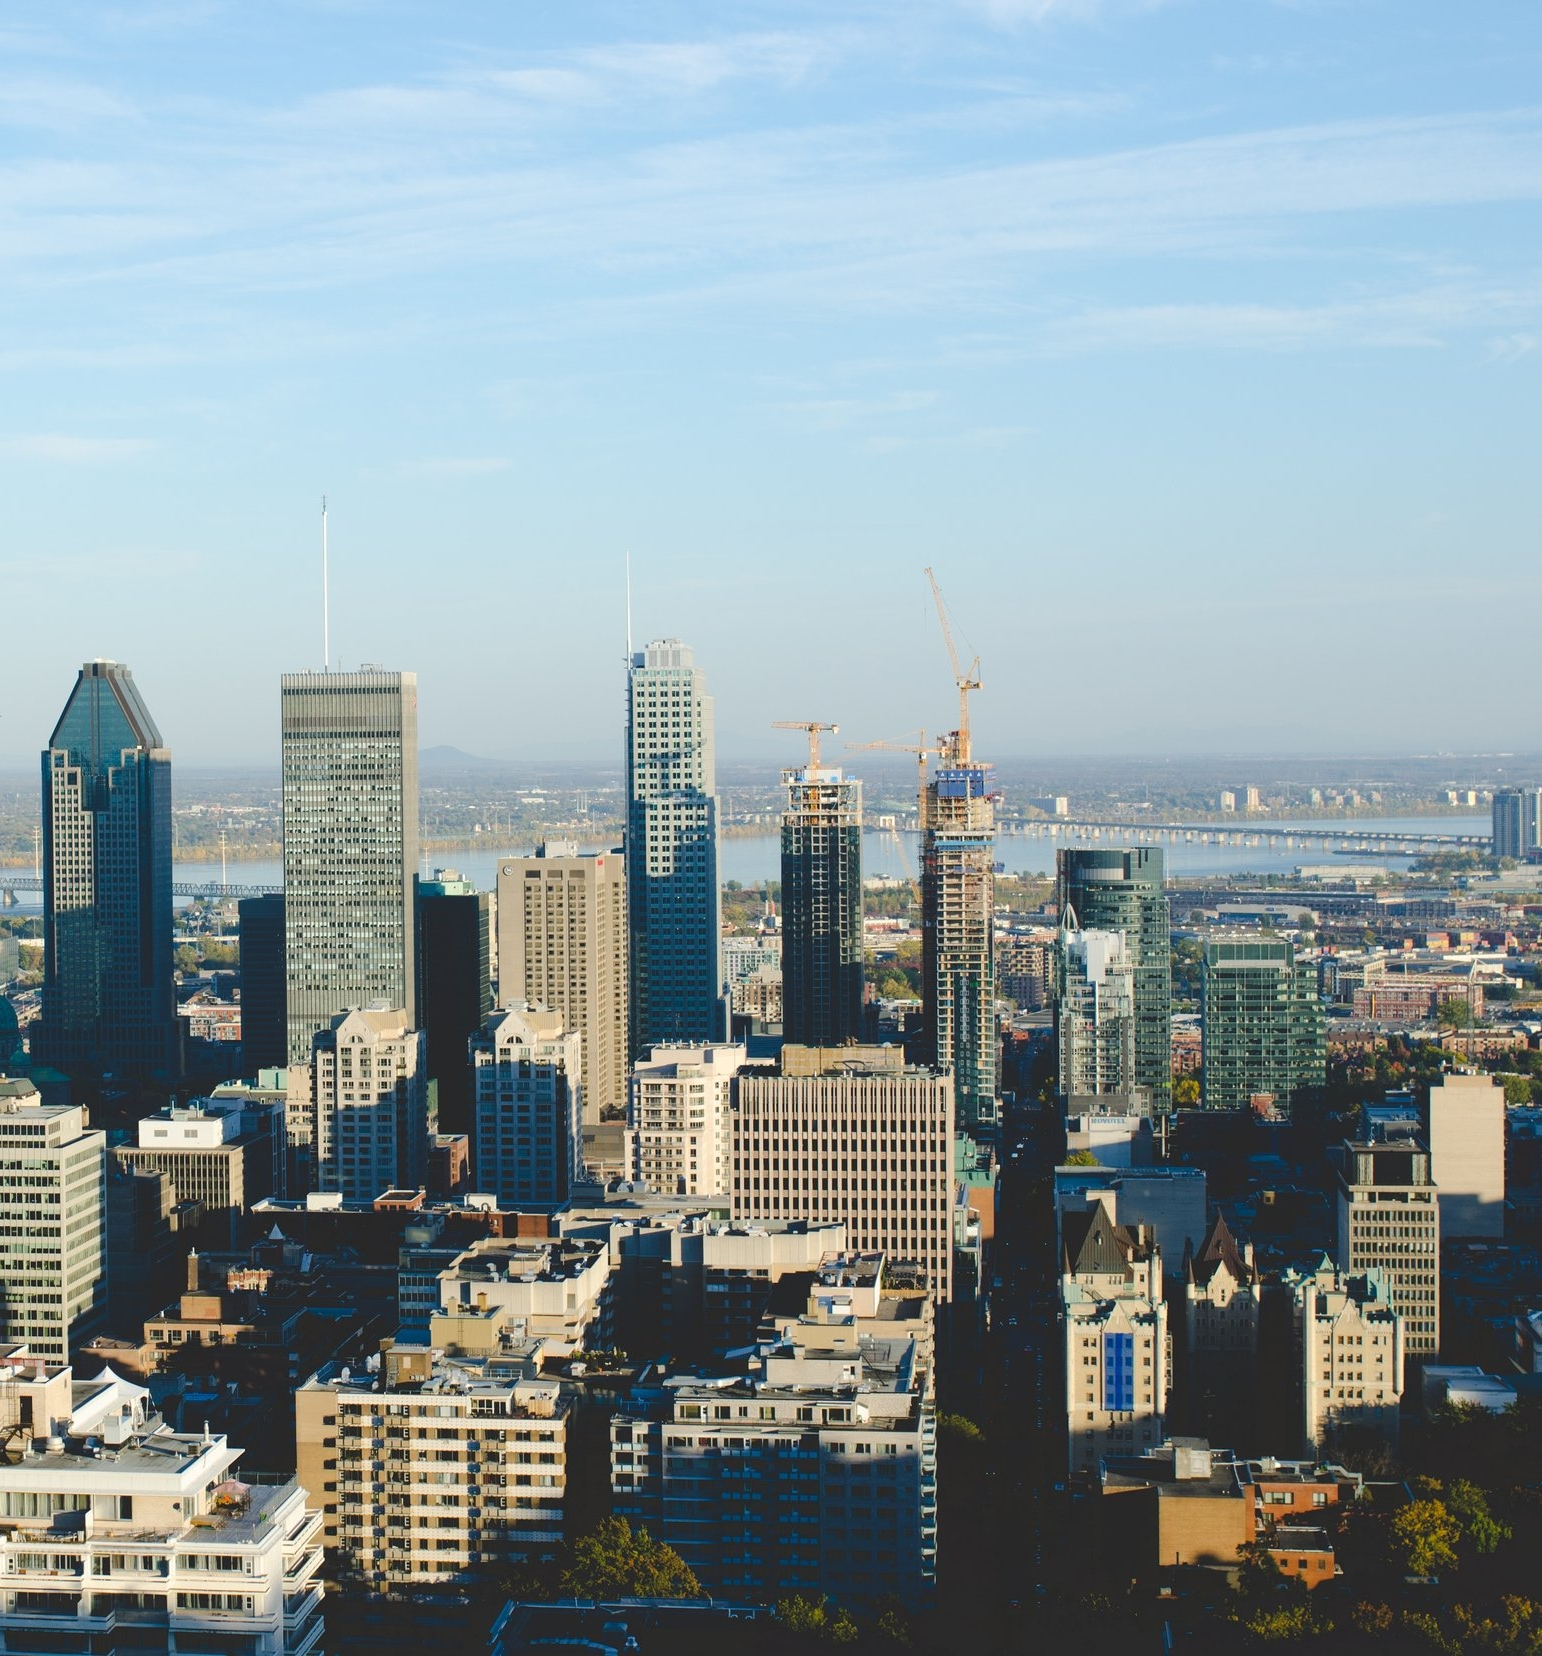 Vision - A sustainable and world class entrepreneurial ecosystem powering the knowledge economy and nurturing a pipeline of high-growth companies to help Montreal compete on the global stage.